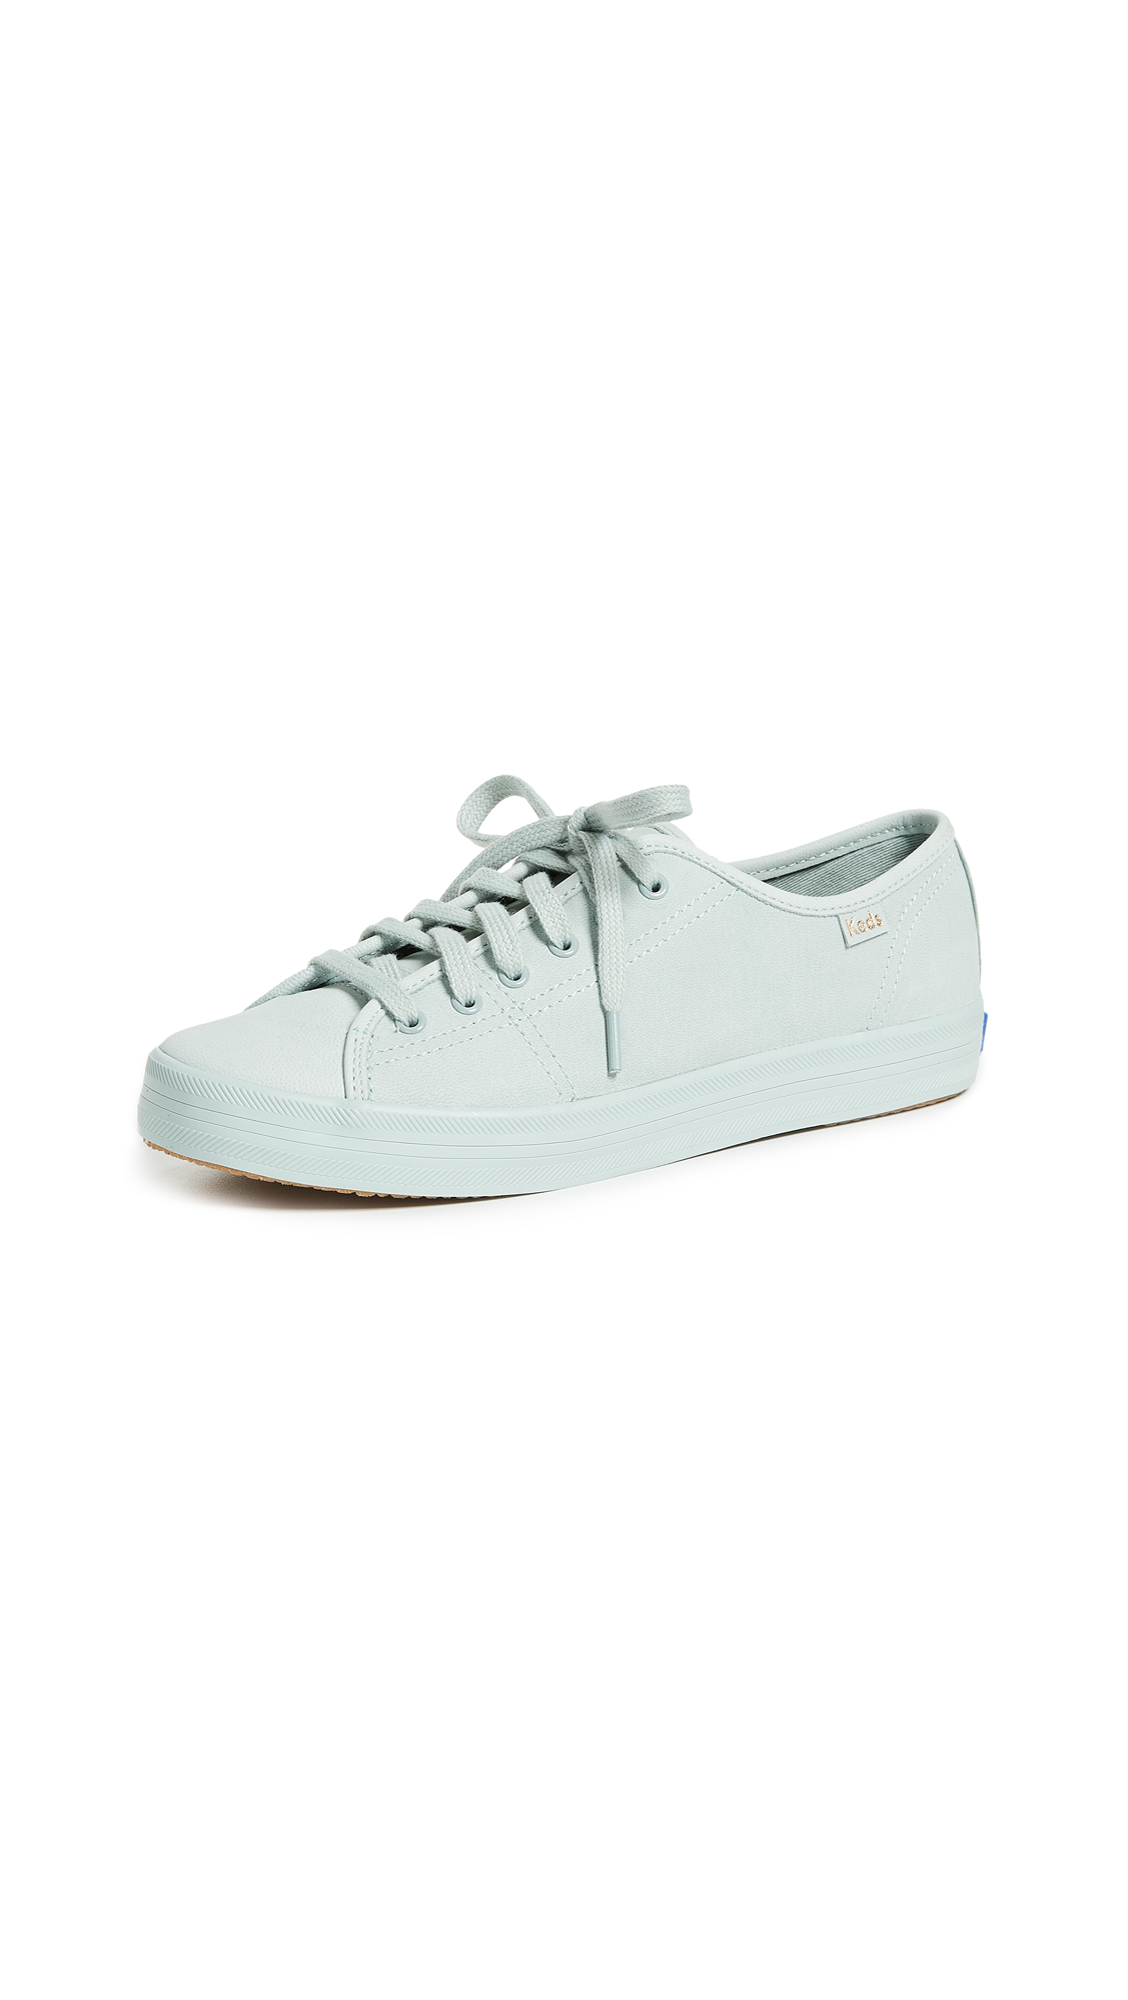 Keds x Kate Spade New York Kickstart Sneakers - Light Green